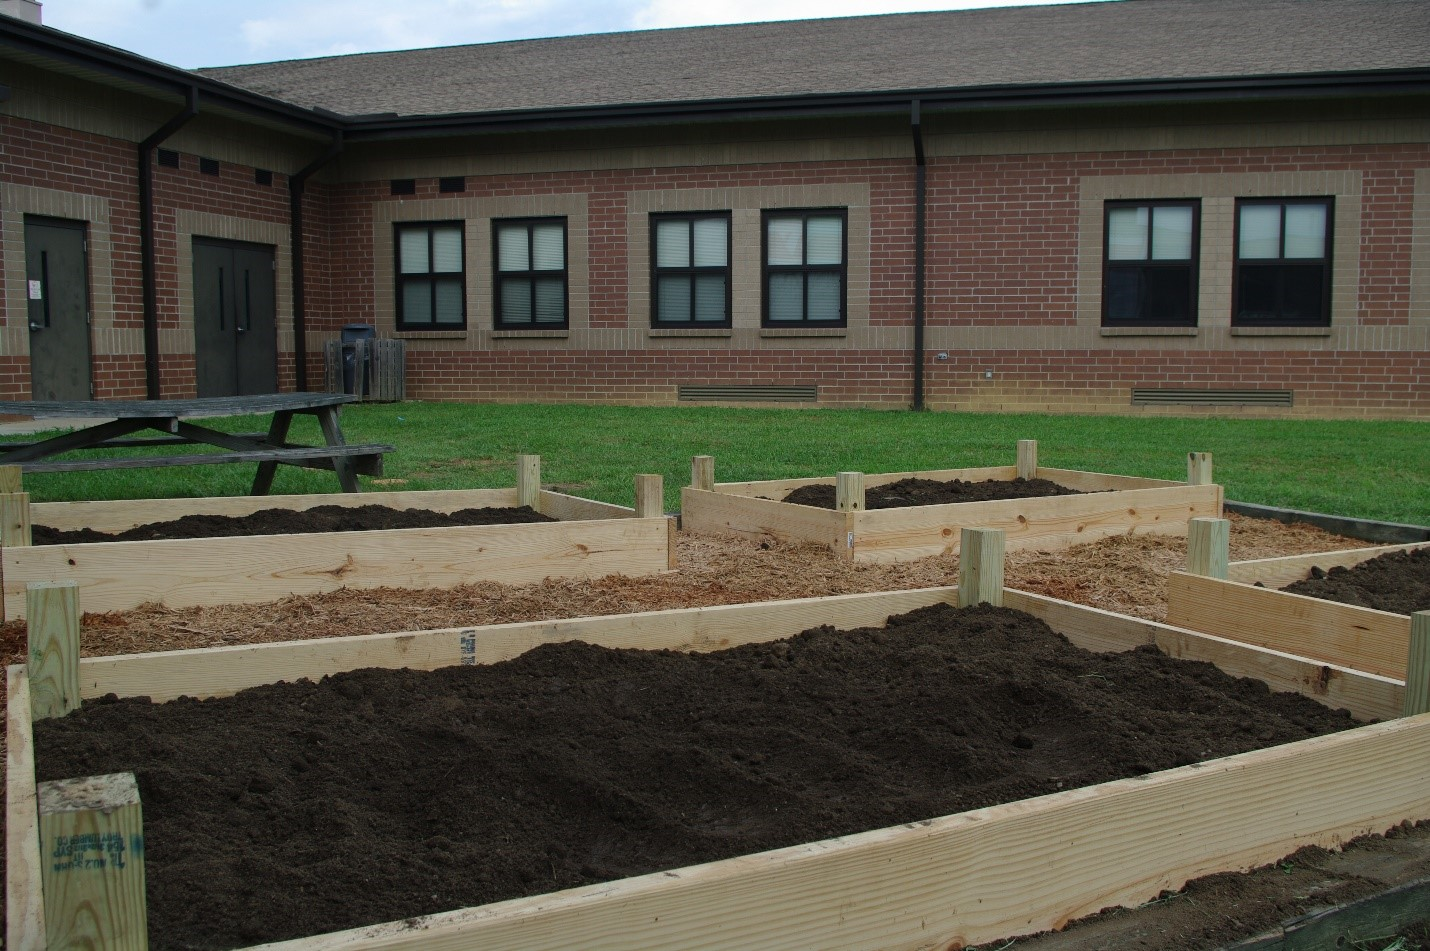 Cane Creek Middle School Landscaping done by Asheville Mulch Yard